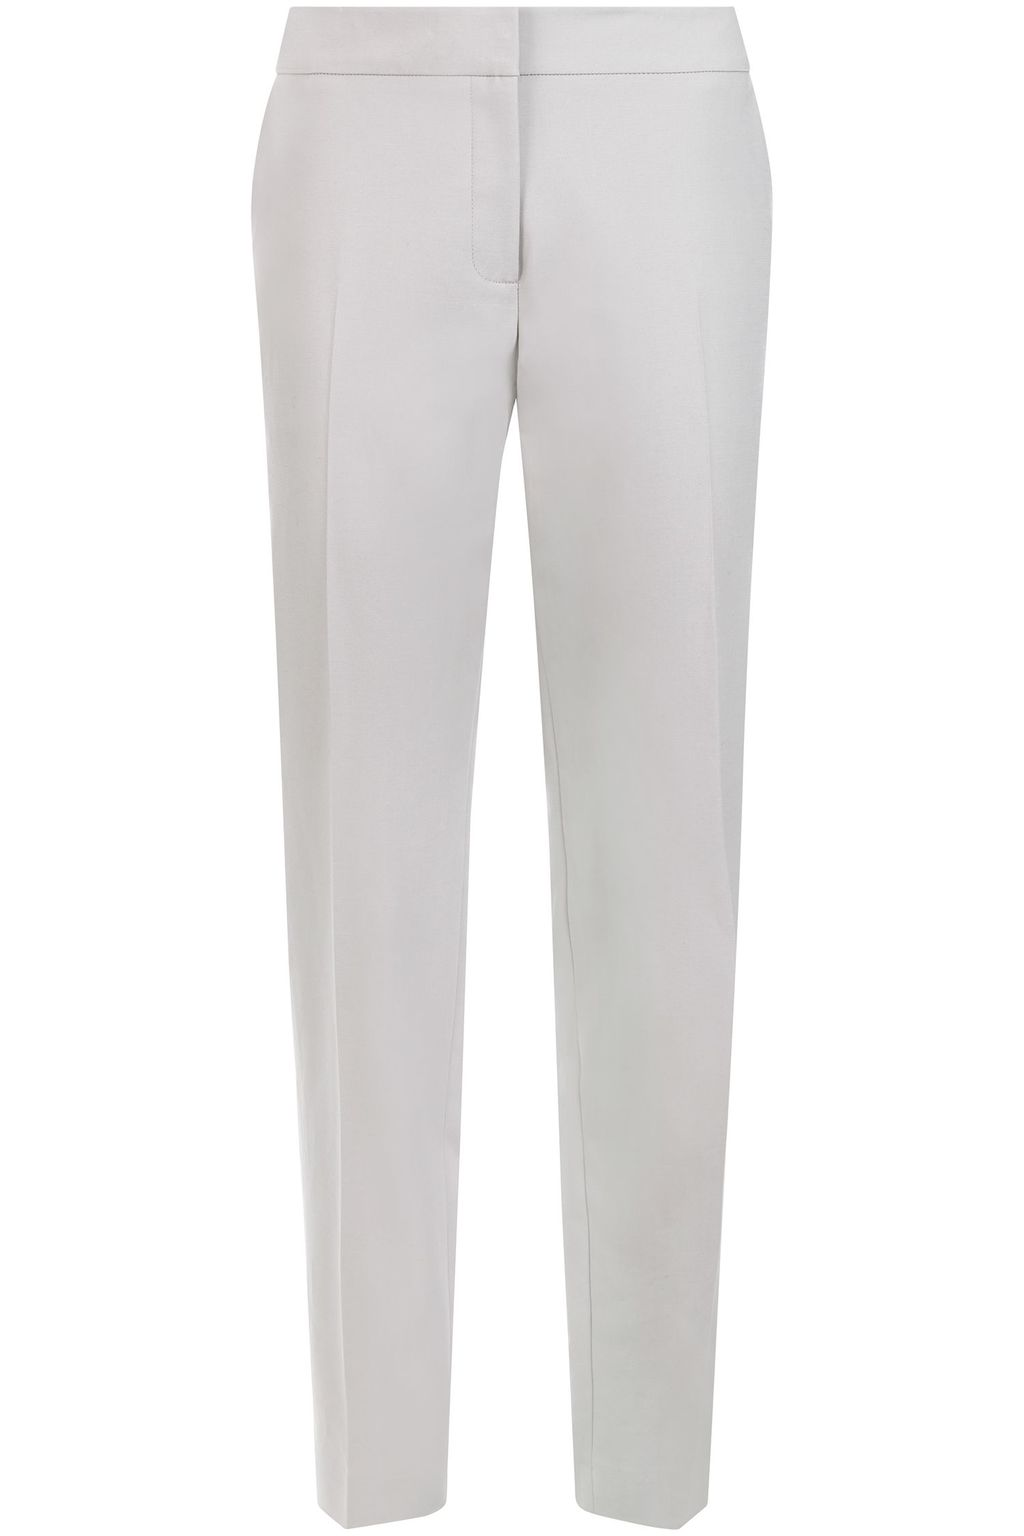 Hoffman Trouser, Grey - length: standard; pattern: plain; waist: mid/regular rise; predominant colour: light grey; occasions: work, creative work; fibres: cotton - stretch; fit: straight leg; pattern type: fabric; texture group: woven light midweight; style: standard; season: s/s 2016